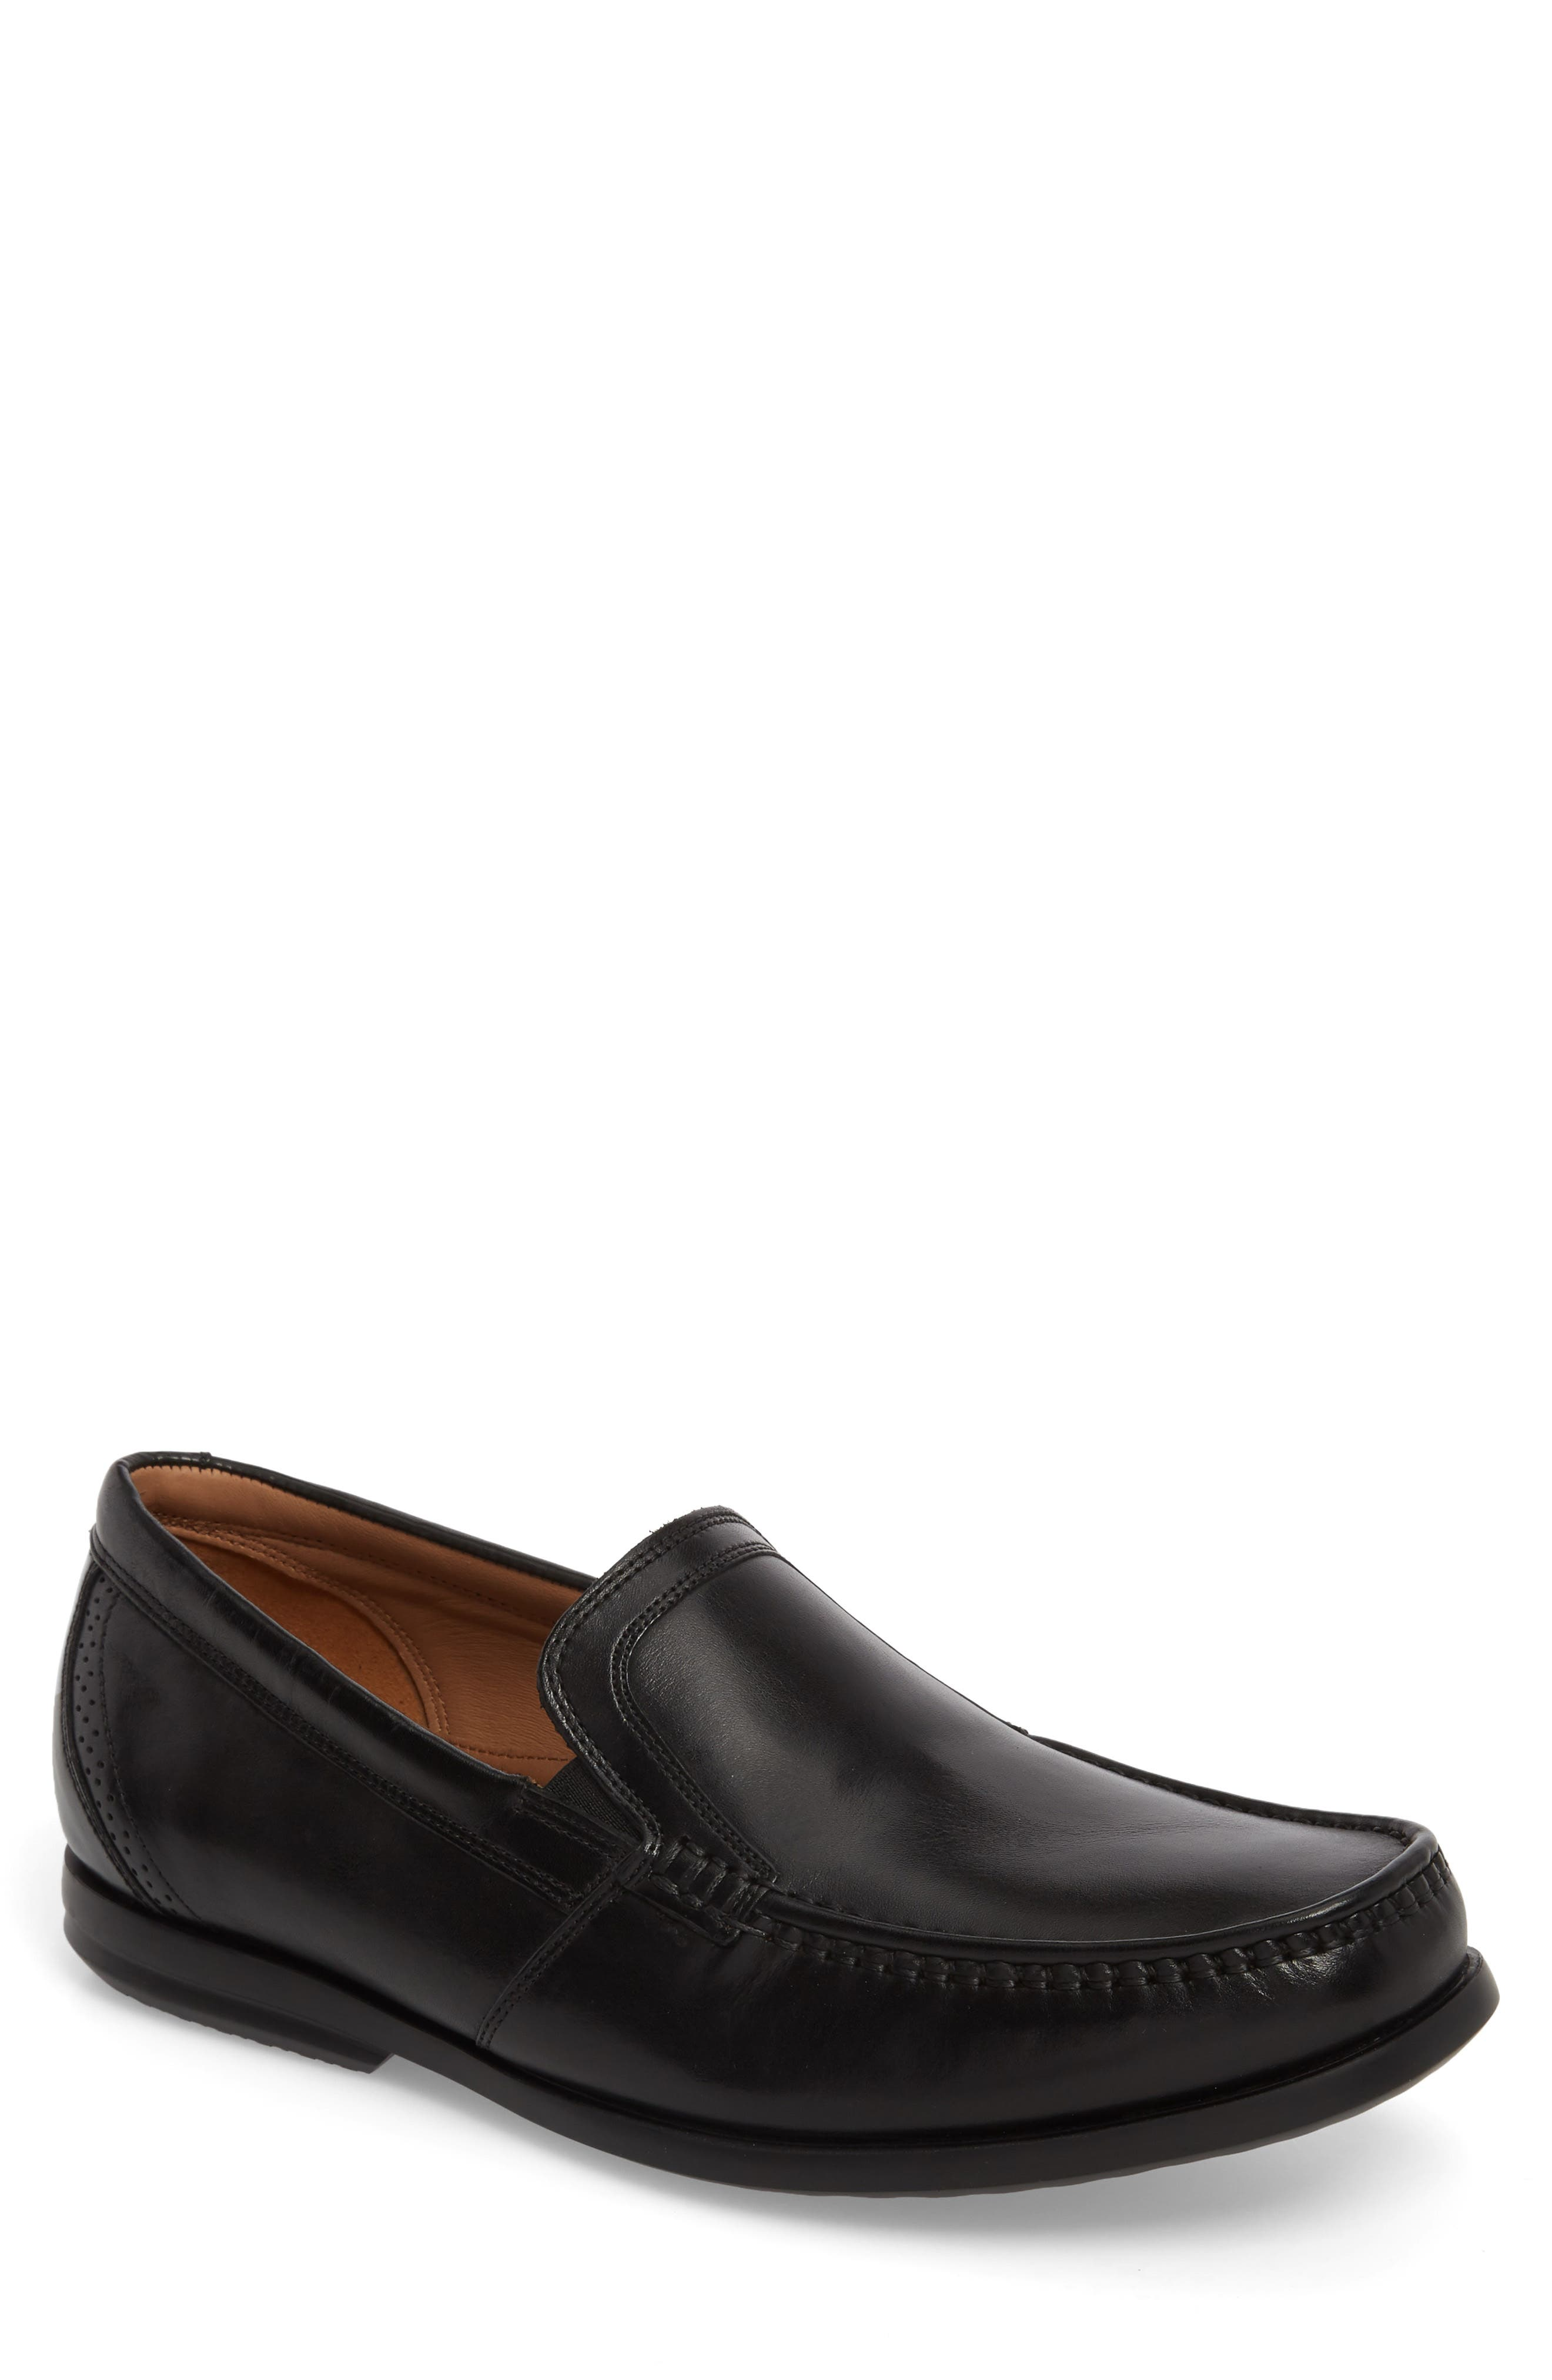 Clarks<sup>®</sup> Ungala Free Venetian Loafer,                         Main,                         color, Black Leather